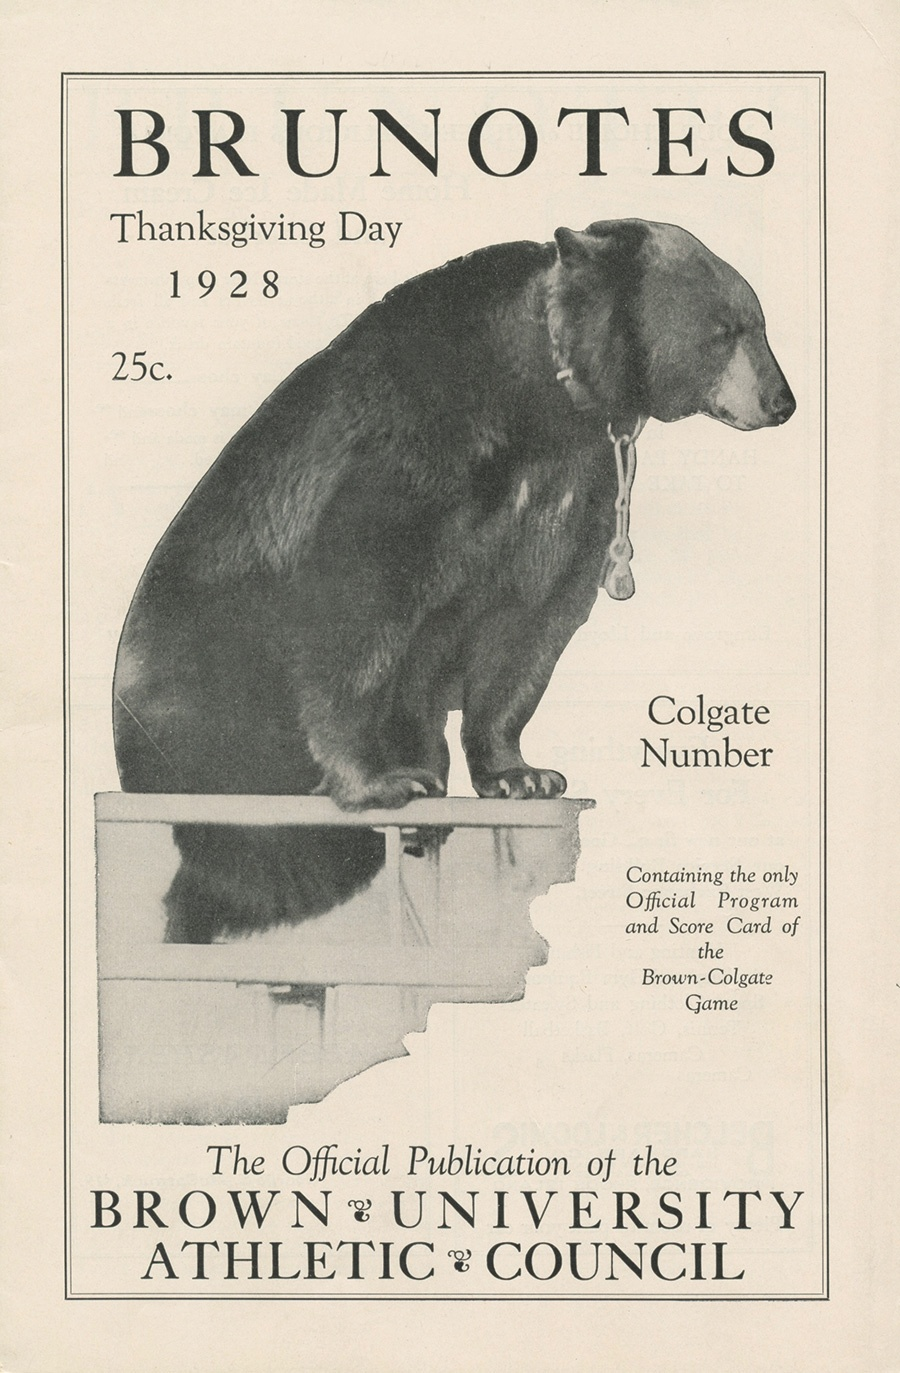 Vintage Brunotes poster from Thanksgiving 1928, featuring a bear.